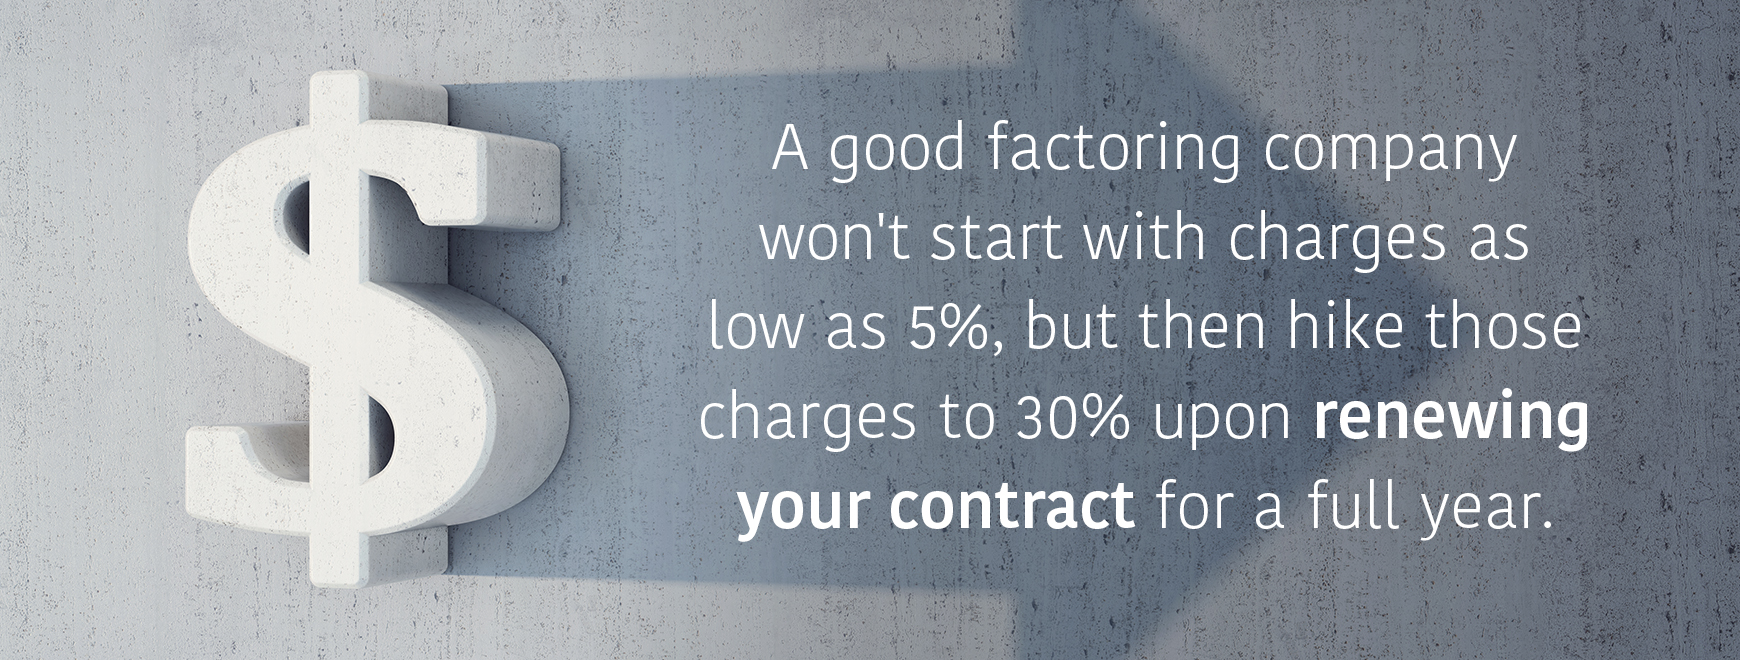 freight-factoring-contracts